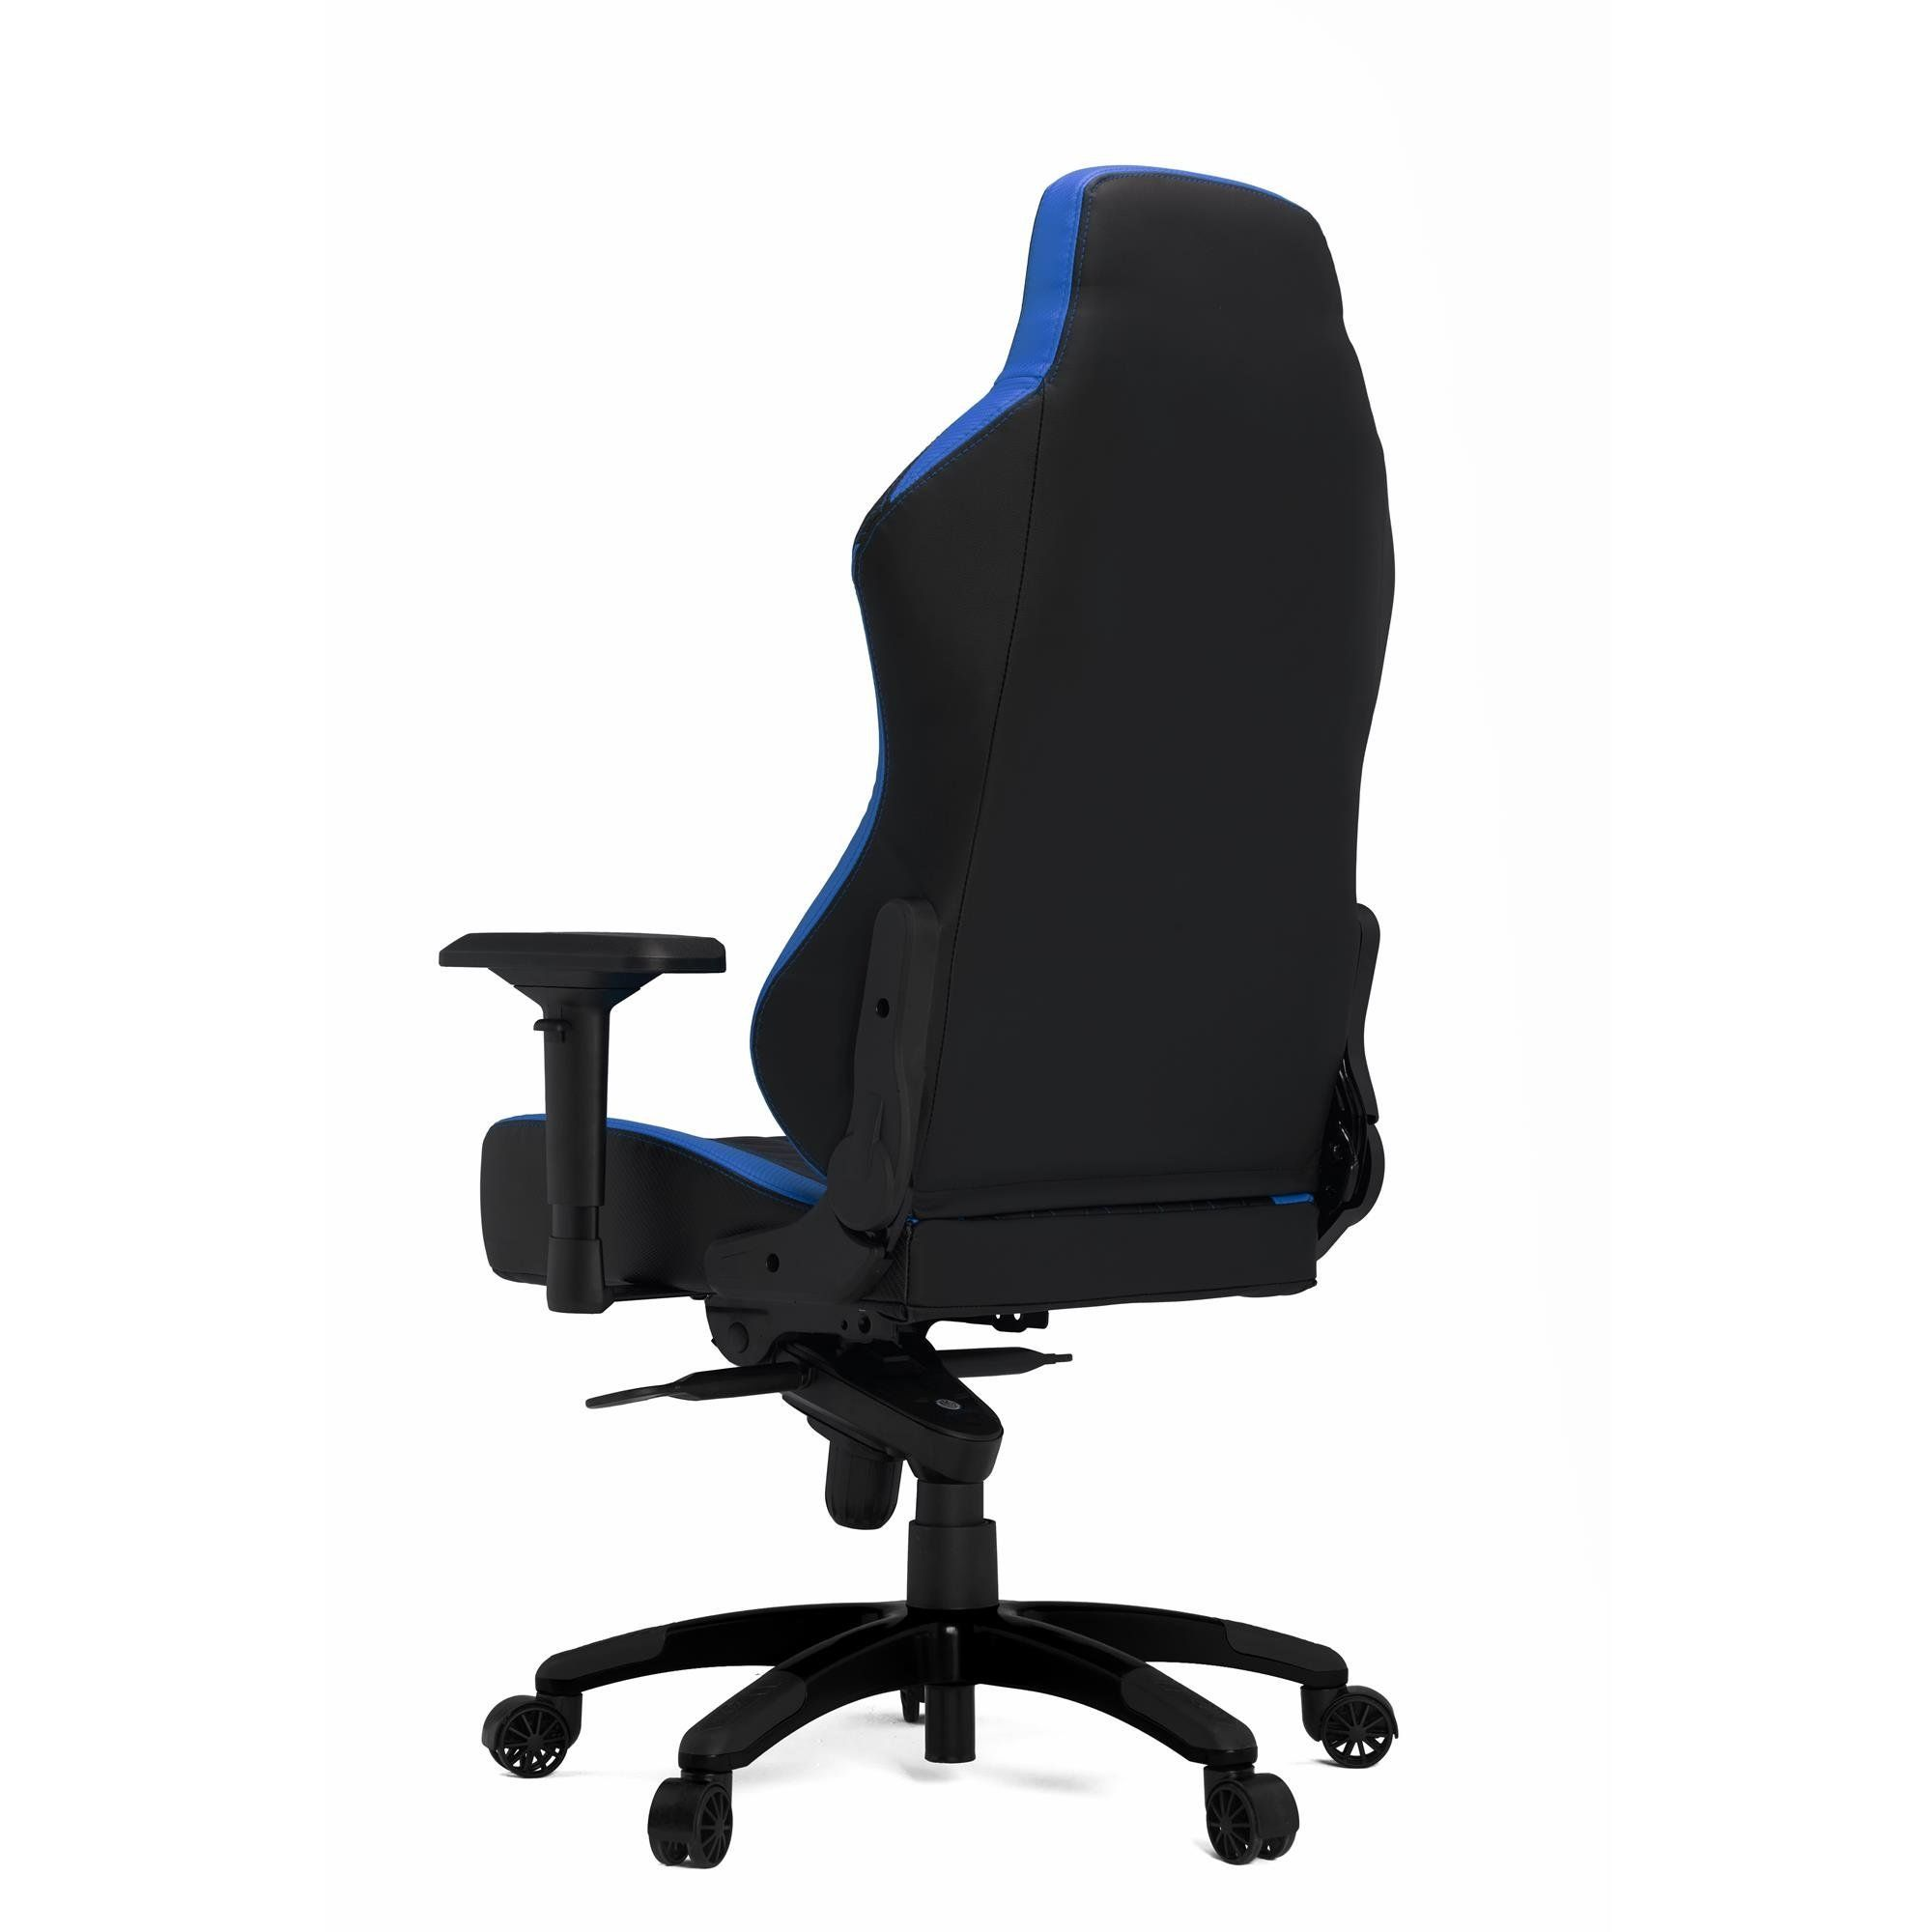 Hhgears xl series pc gaming racing chair black and blue with